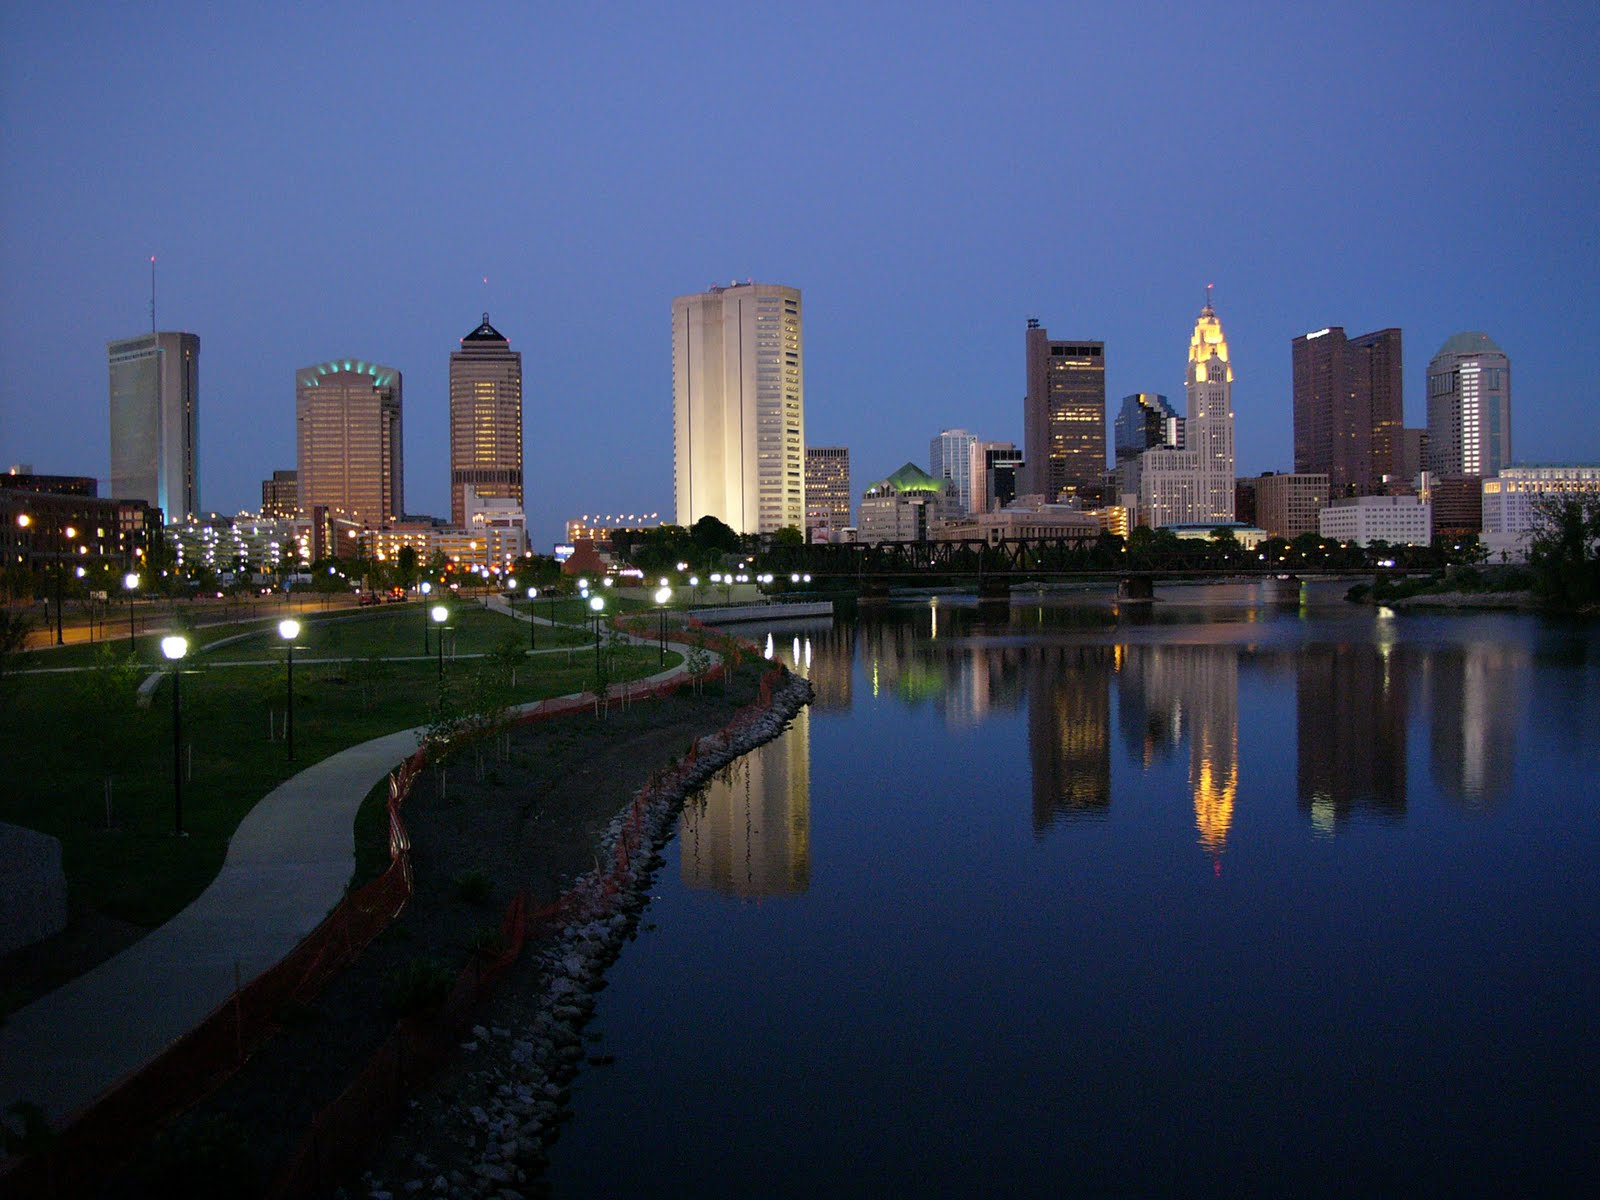 columbus ohio wallpaper - photo #7